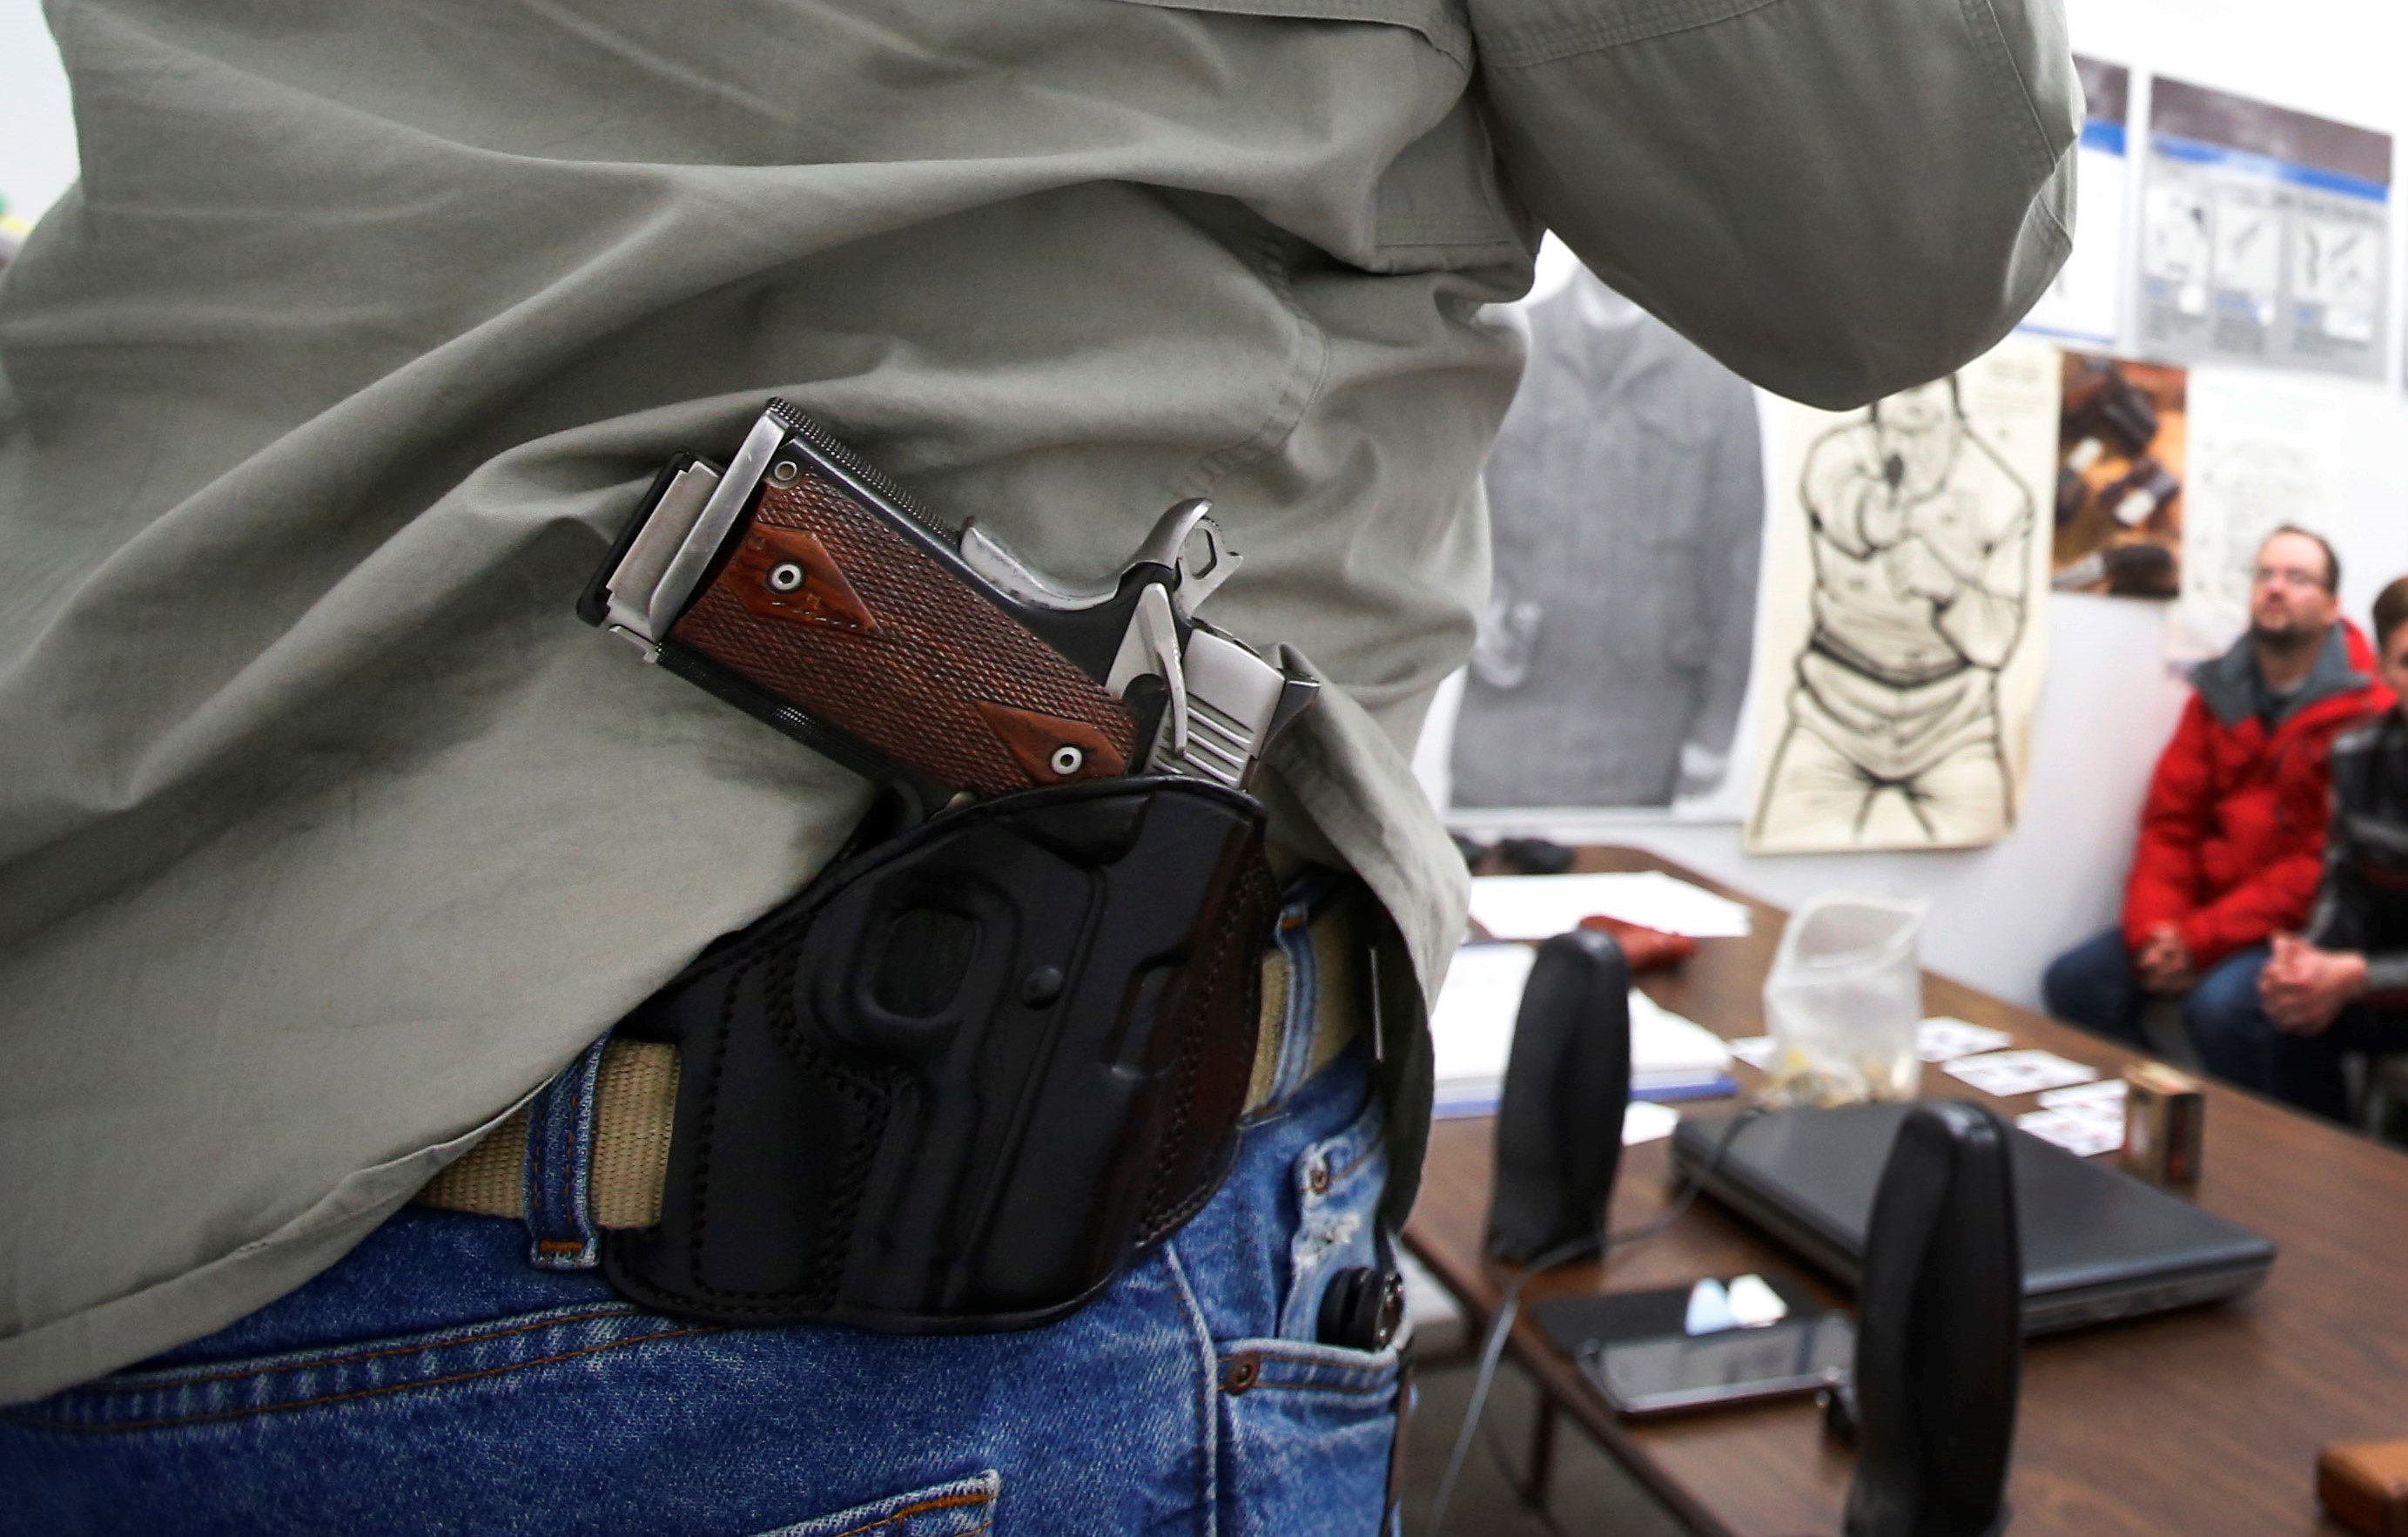 Republican lawmakers have introduced a bill that would allow people who have concealed-carry permits in their home states to take their weapons to other states. (Getty Images)